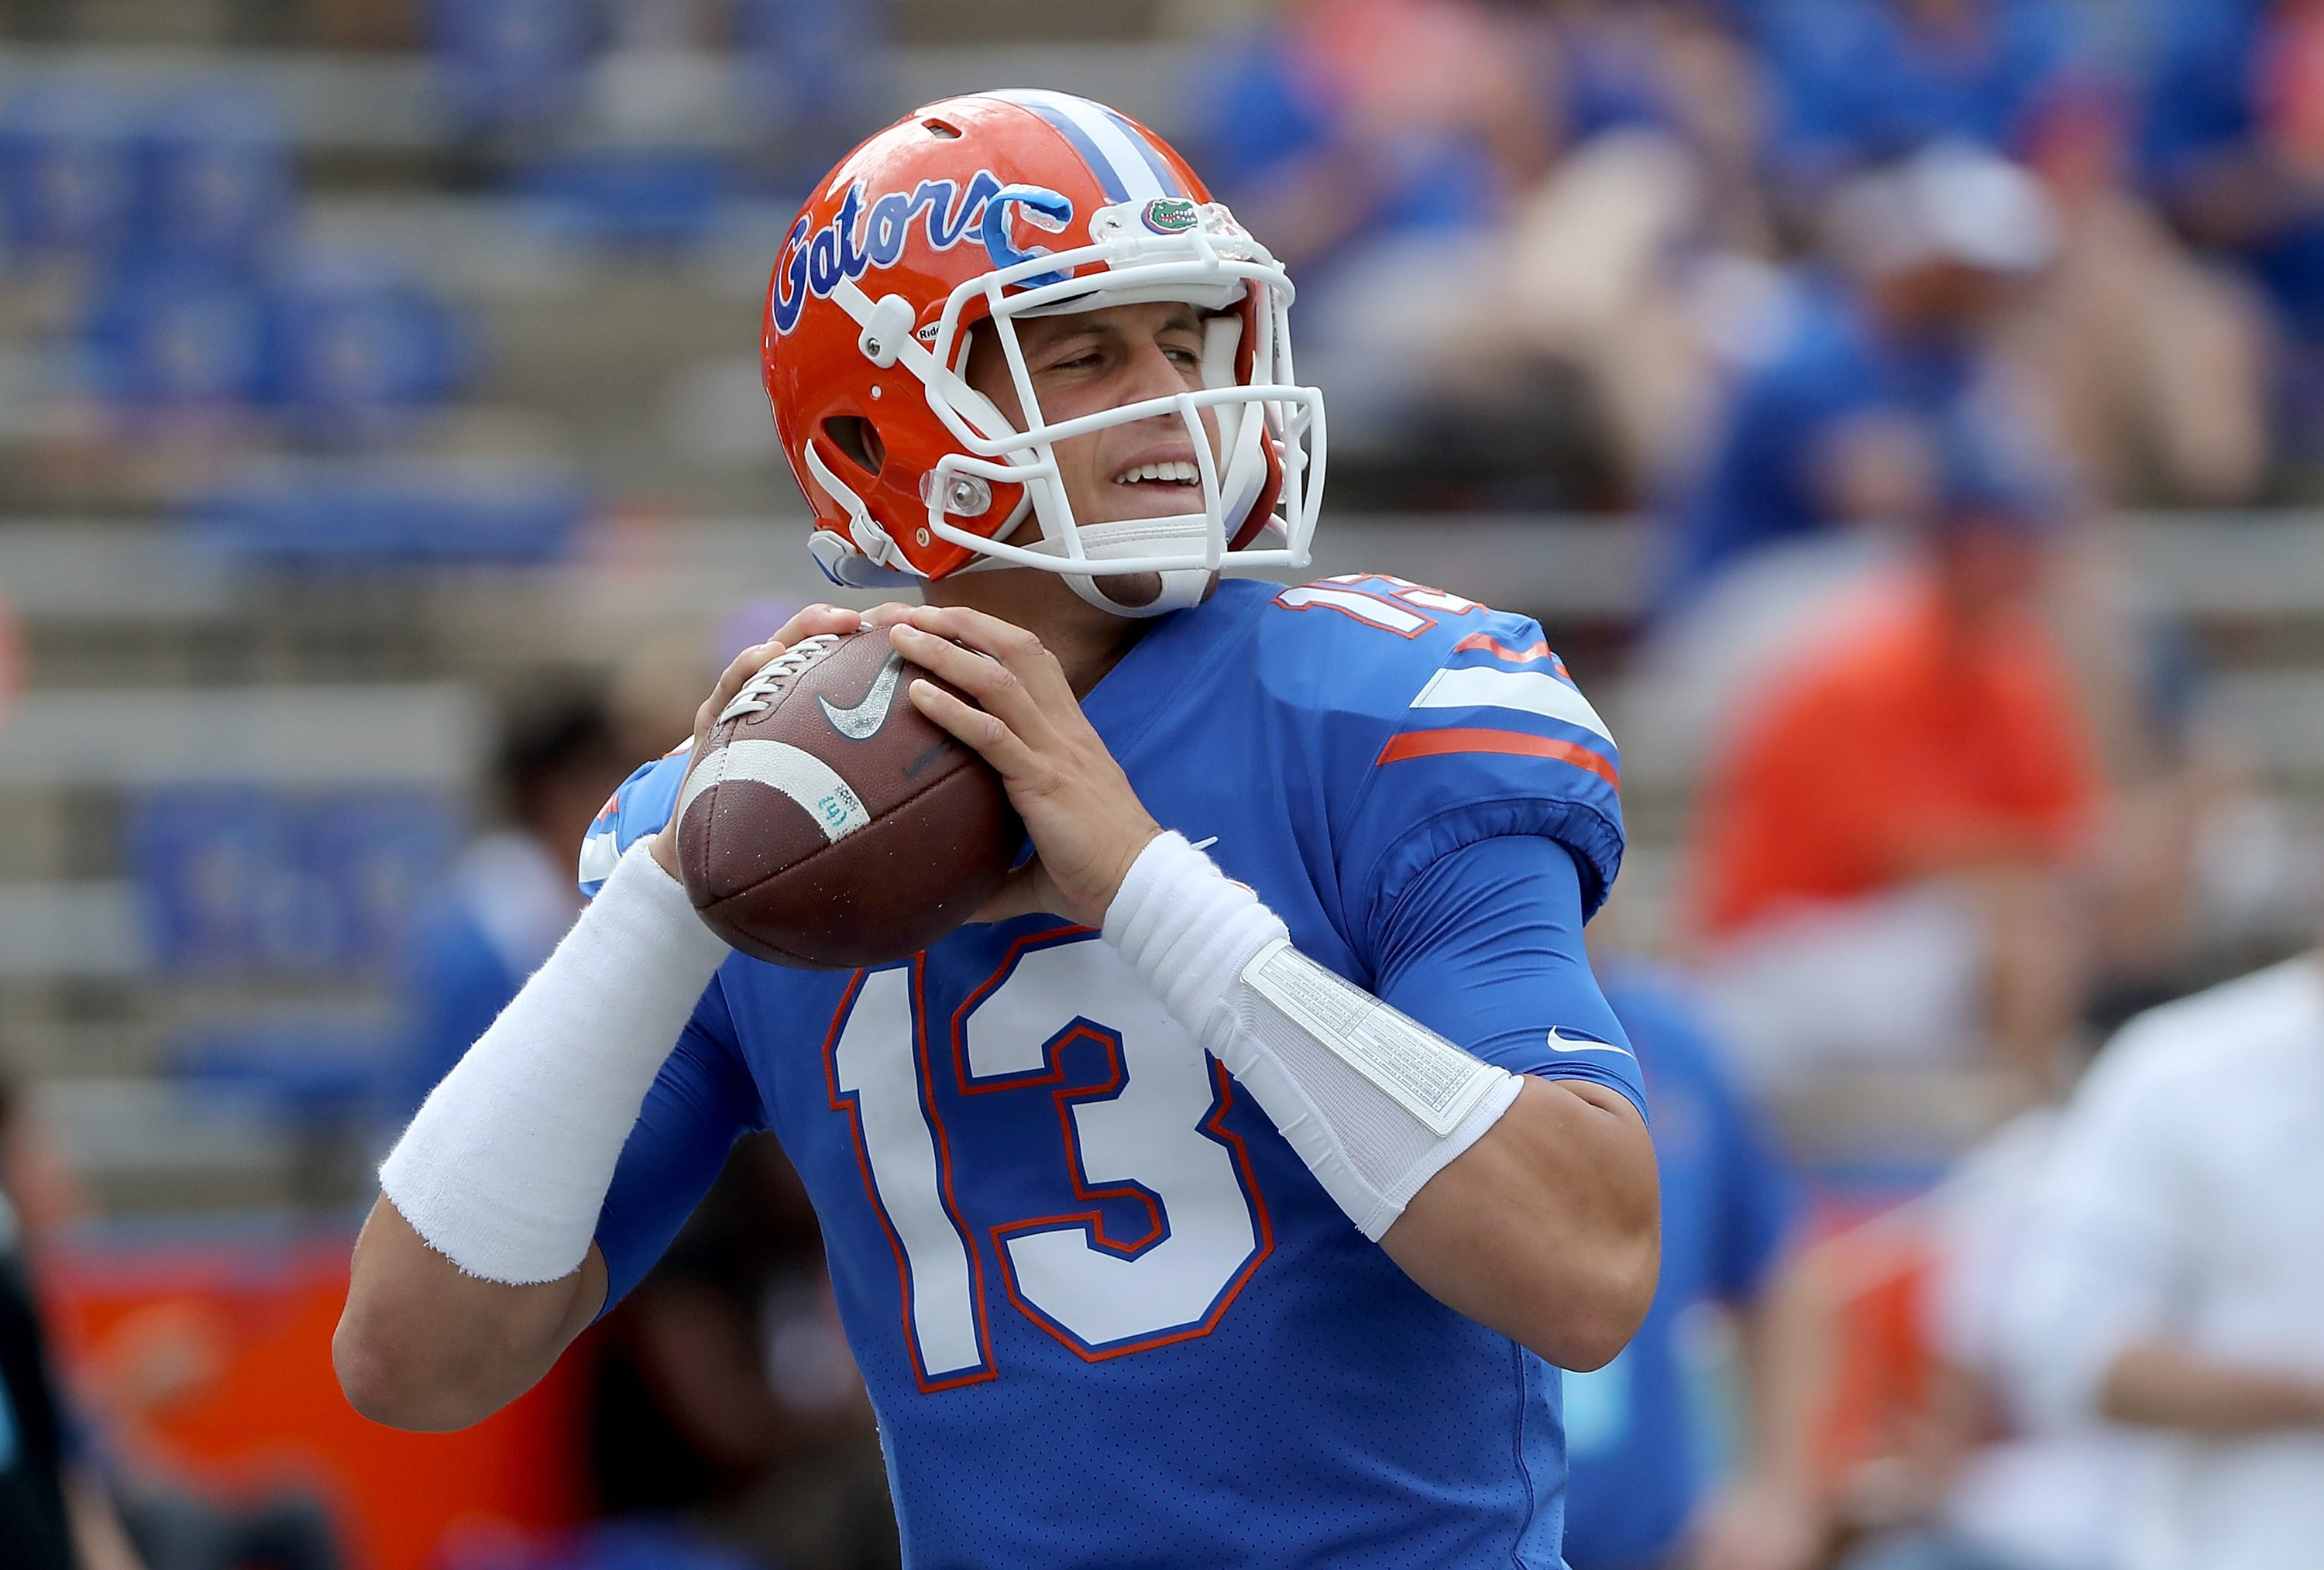 Texas A&M Football: Florida preview, players to watch and ...